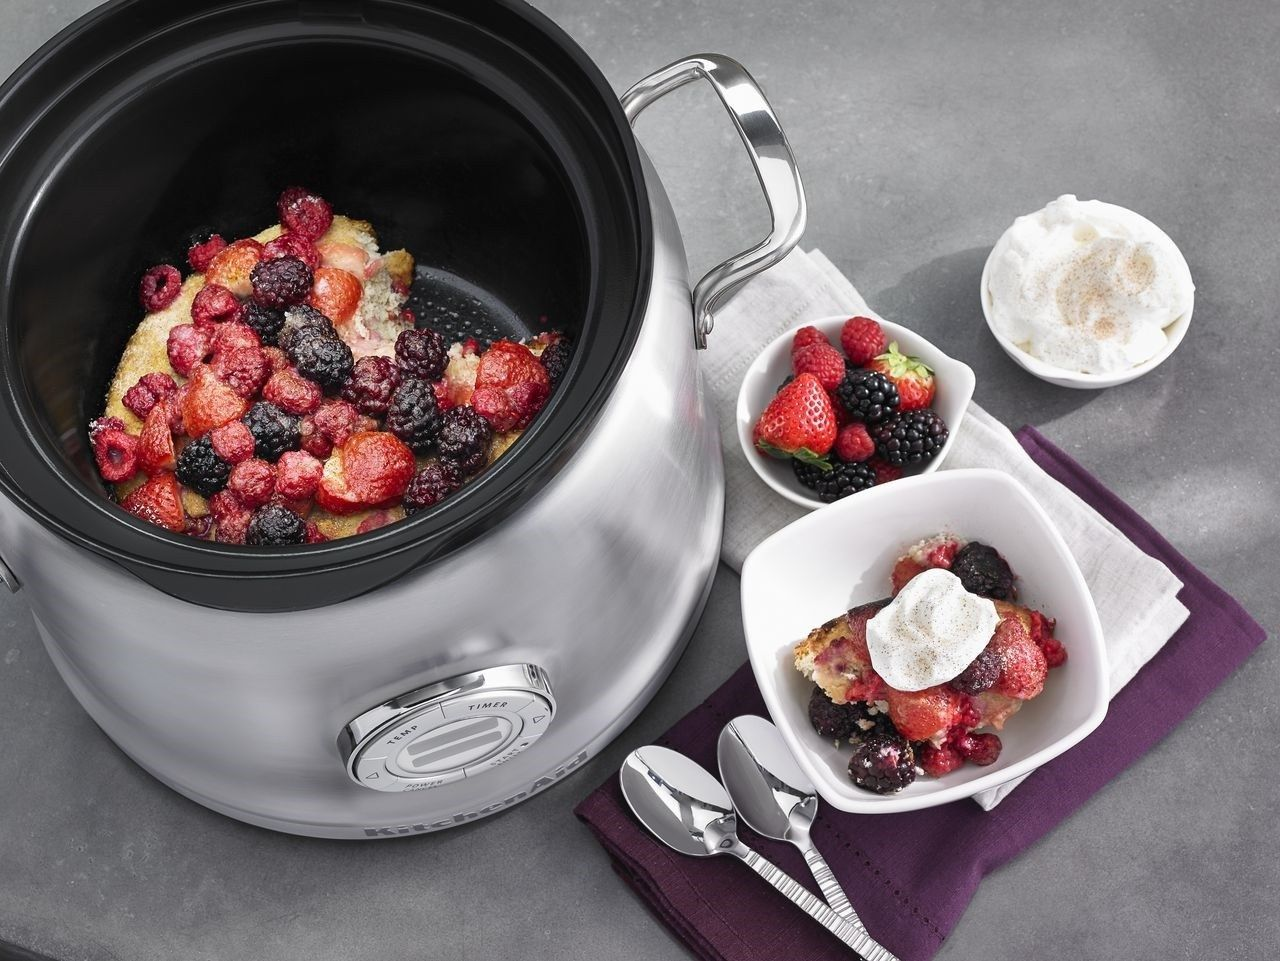 Kitchenaid 4qt multicooker stainless steel